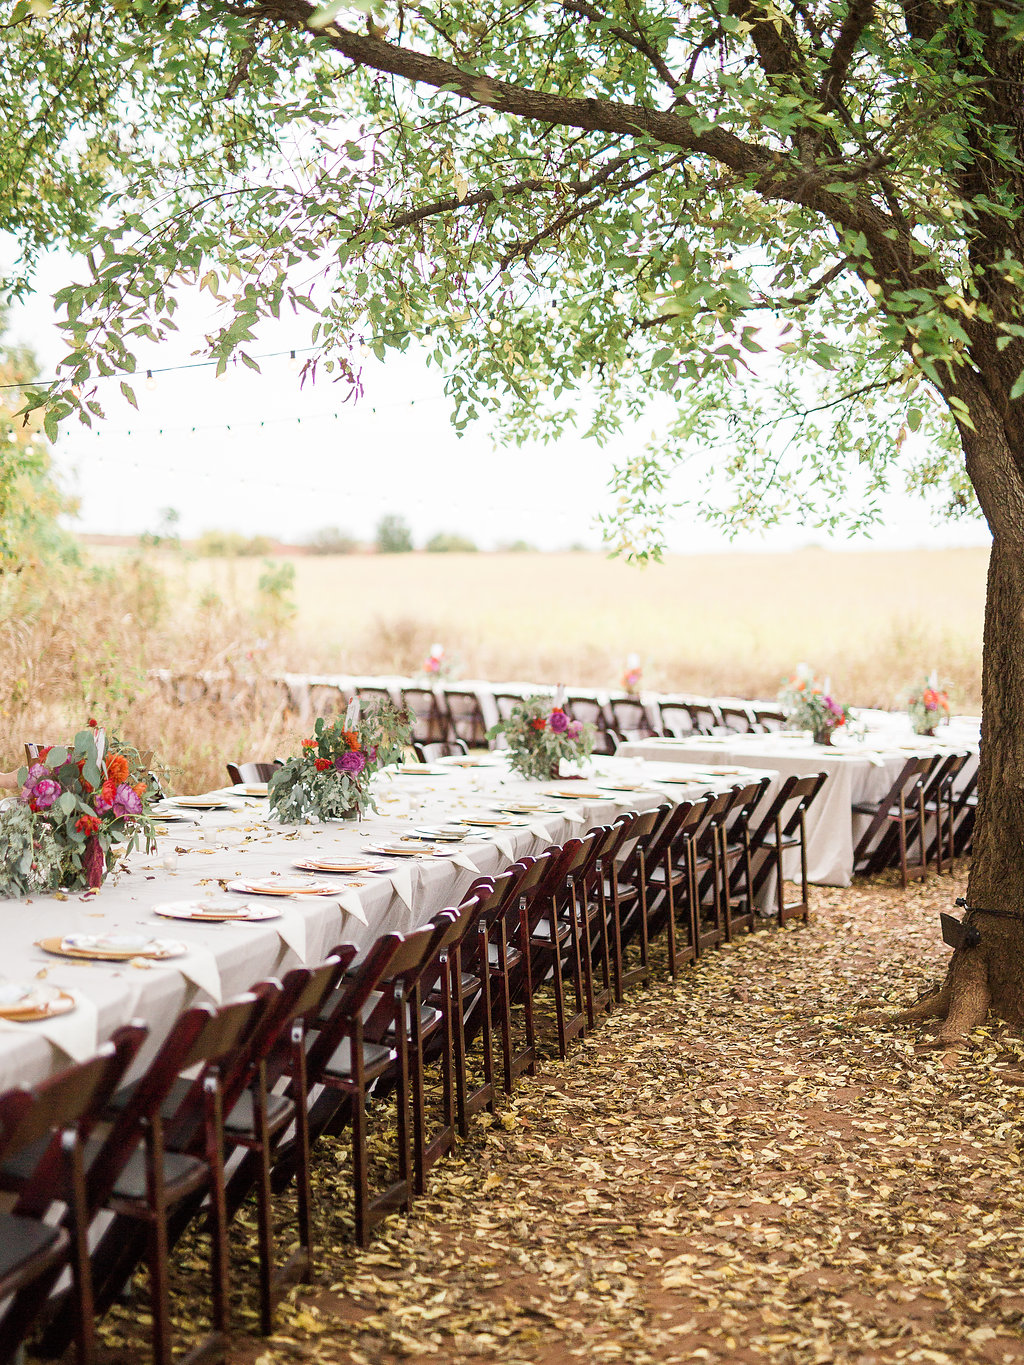 A perfect fall day! The fallen leaves could not be more beautiful as they somehow tie into the lovely gold accents on the table